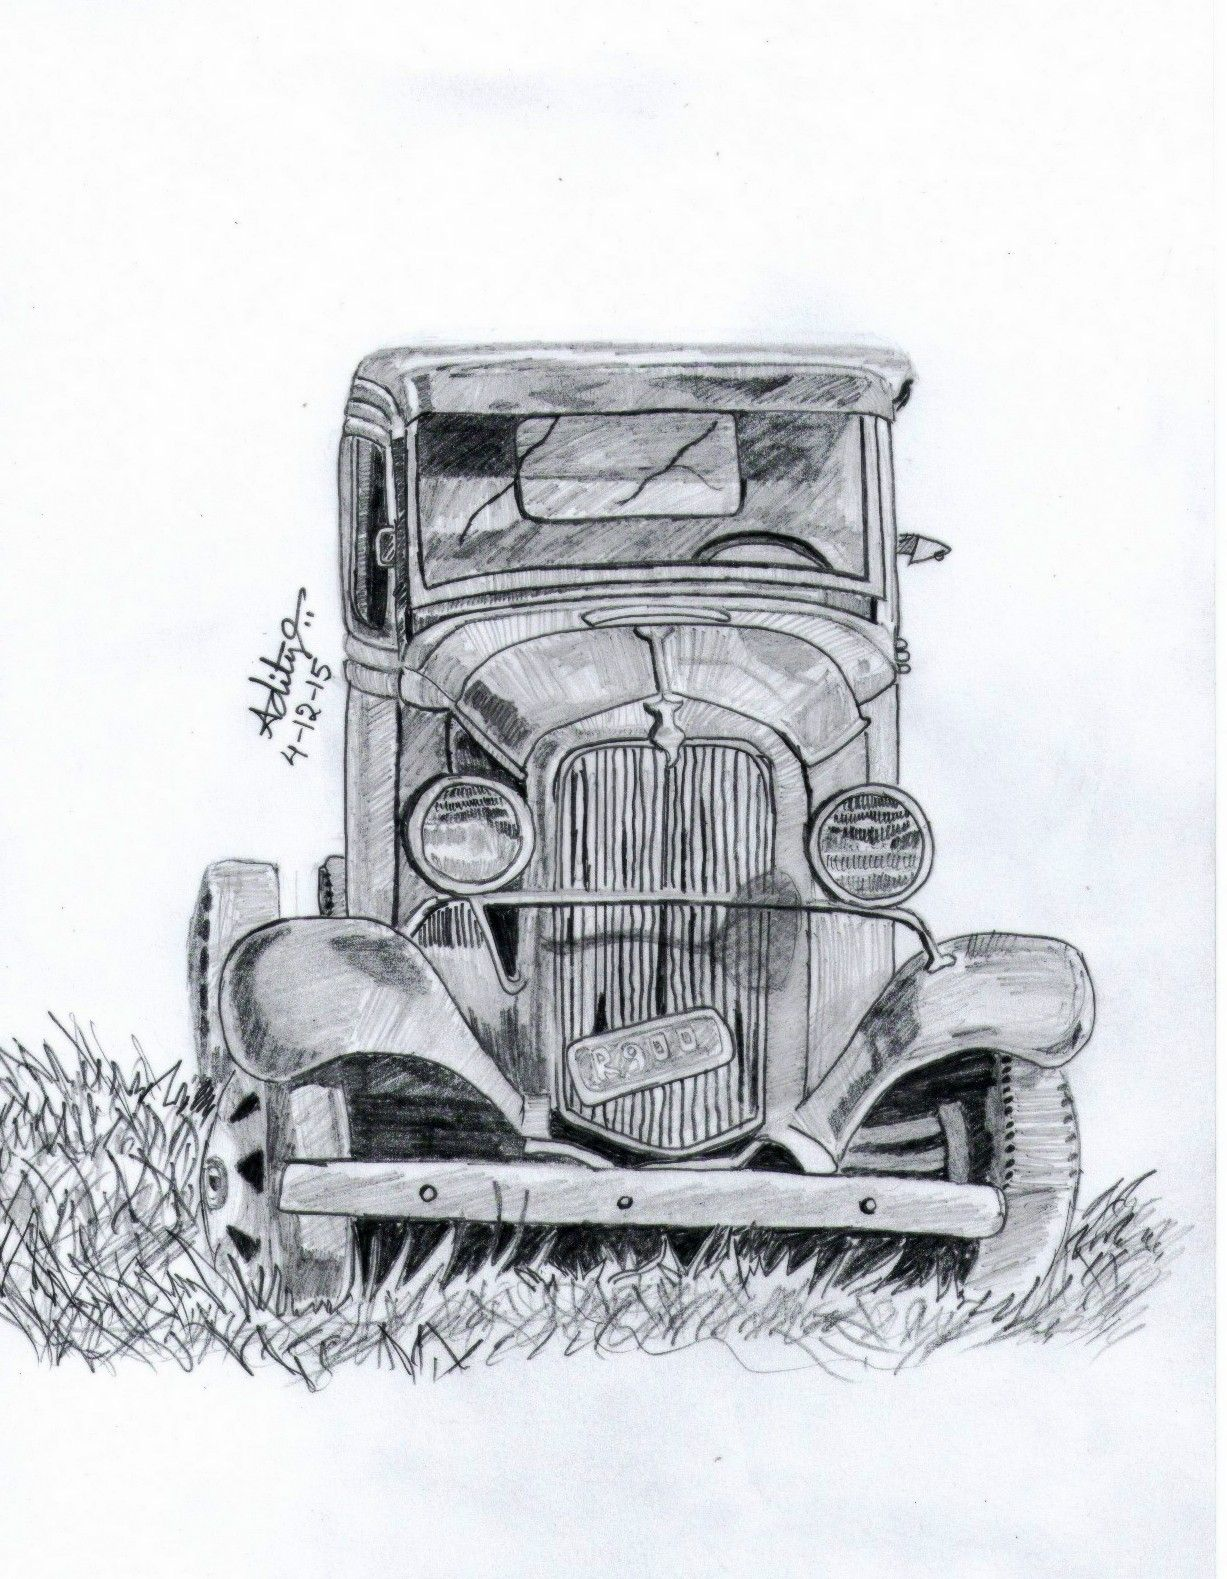 Vintage car pencil sketches in 2019 pencil drawings pencil art